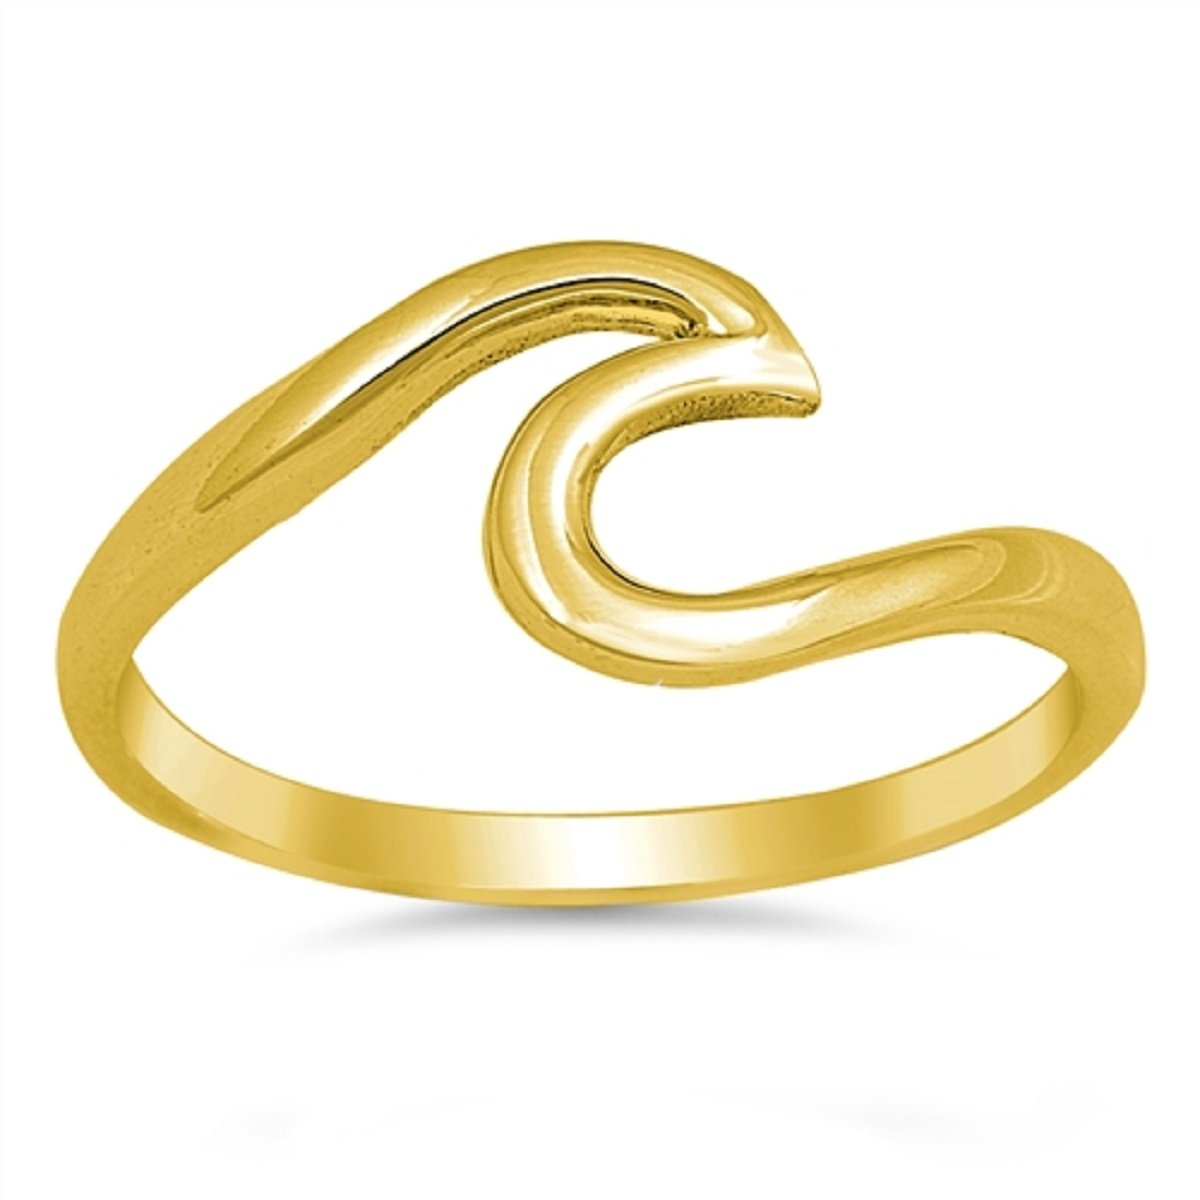 CloseoutWarehouse Yellow Gold-Tone Plated Sterling Silver Wave Design Band Ring Size 14